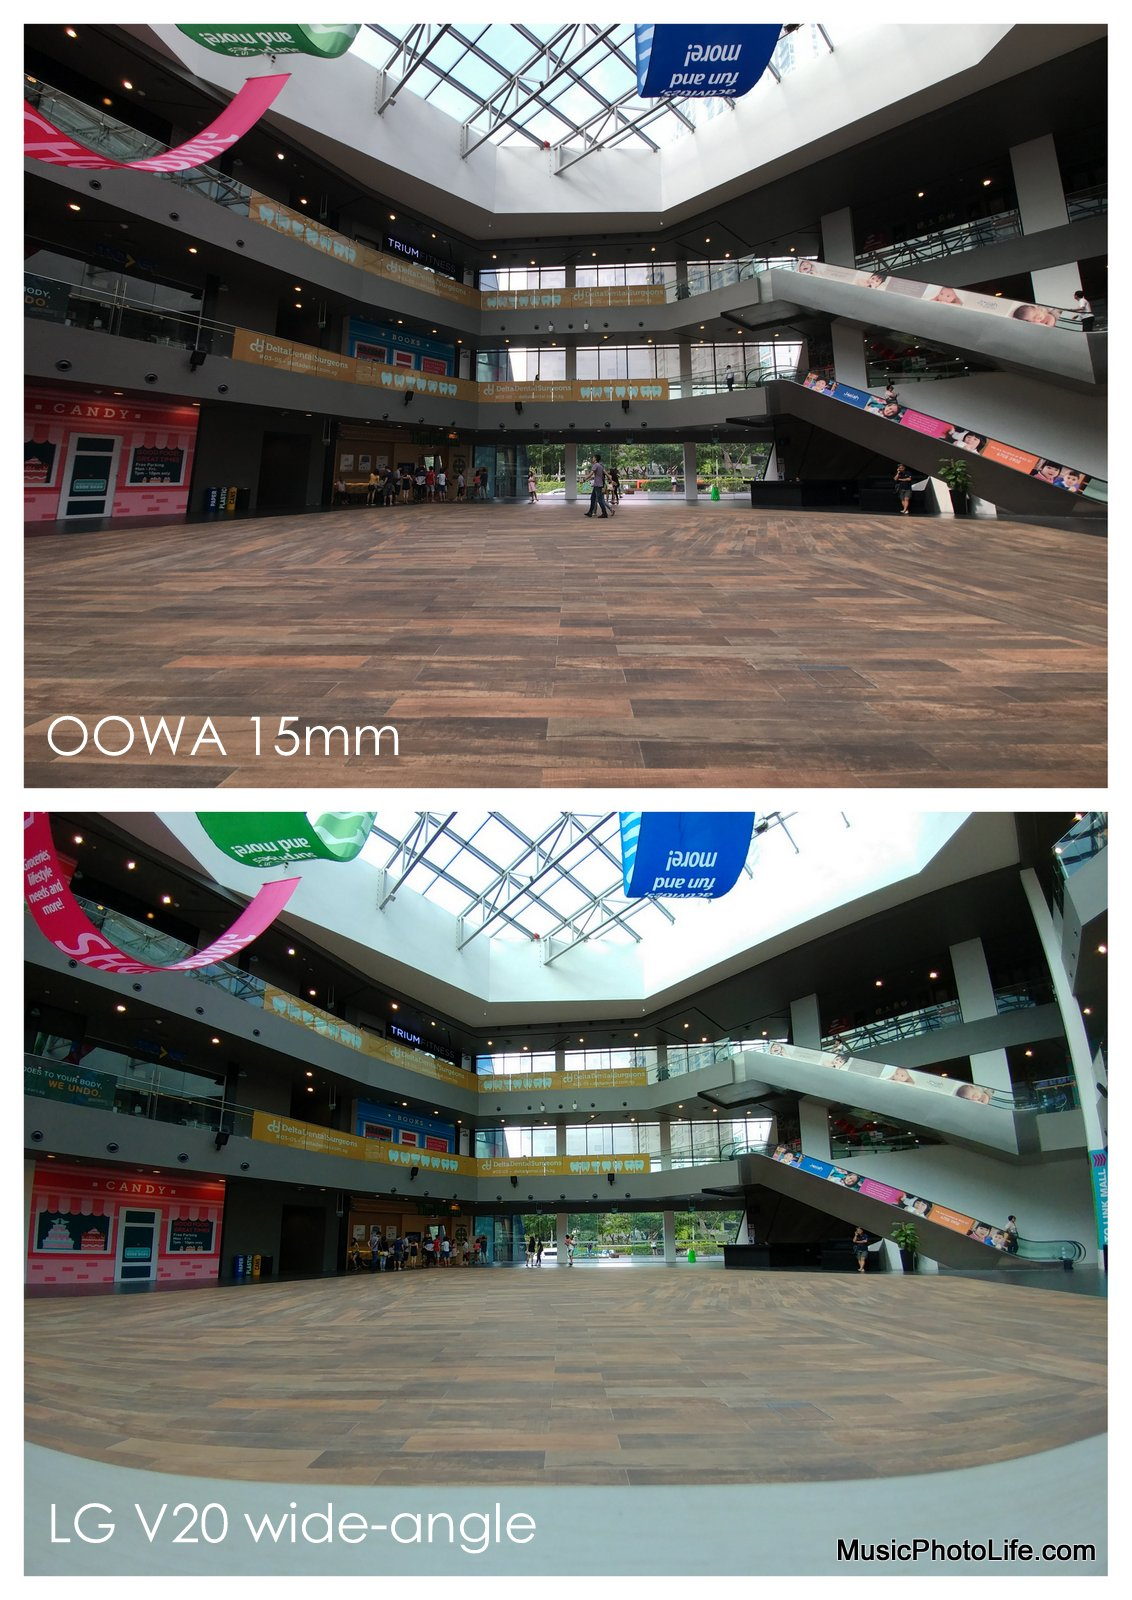 OOWA 15mm compares with LG V20